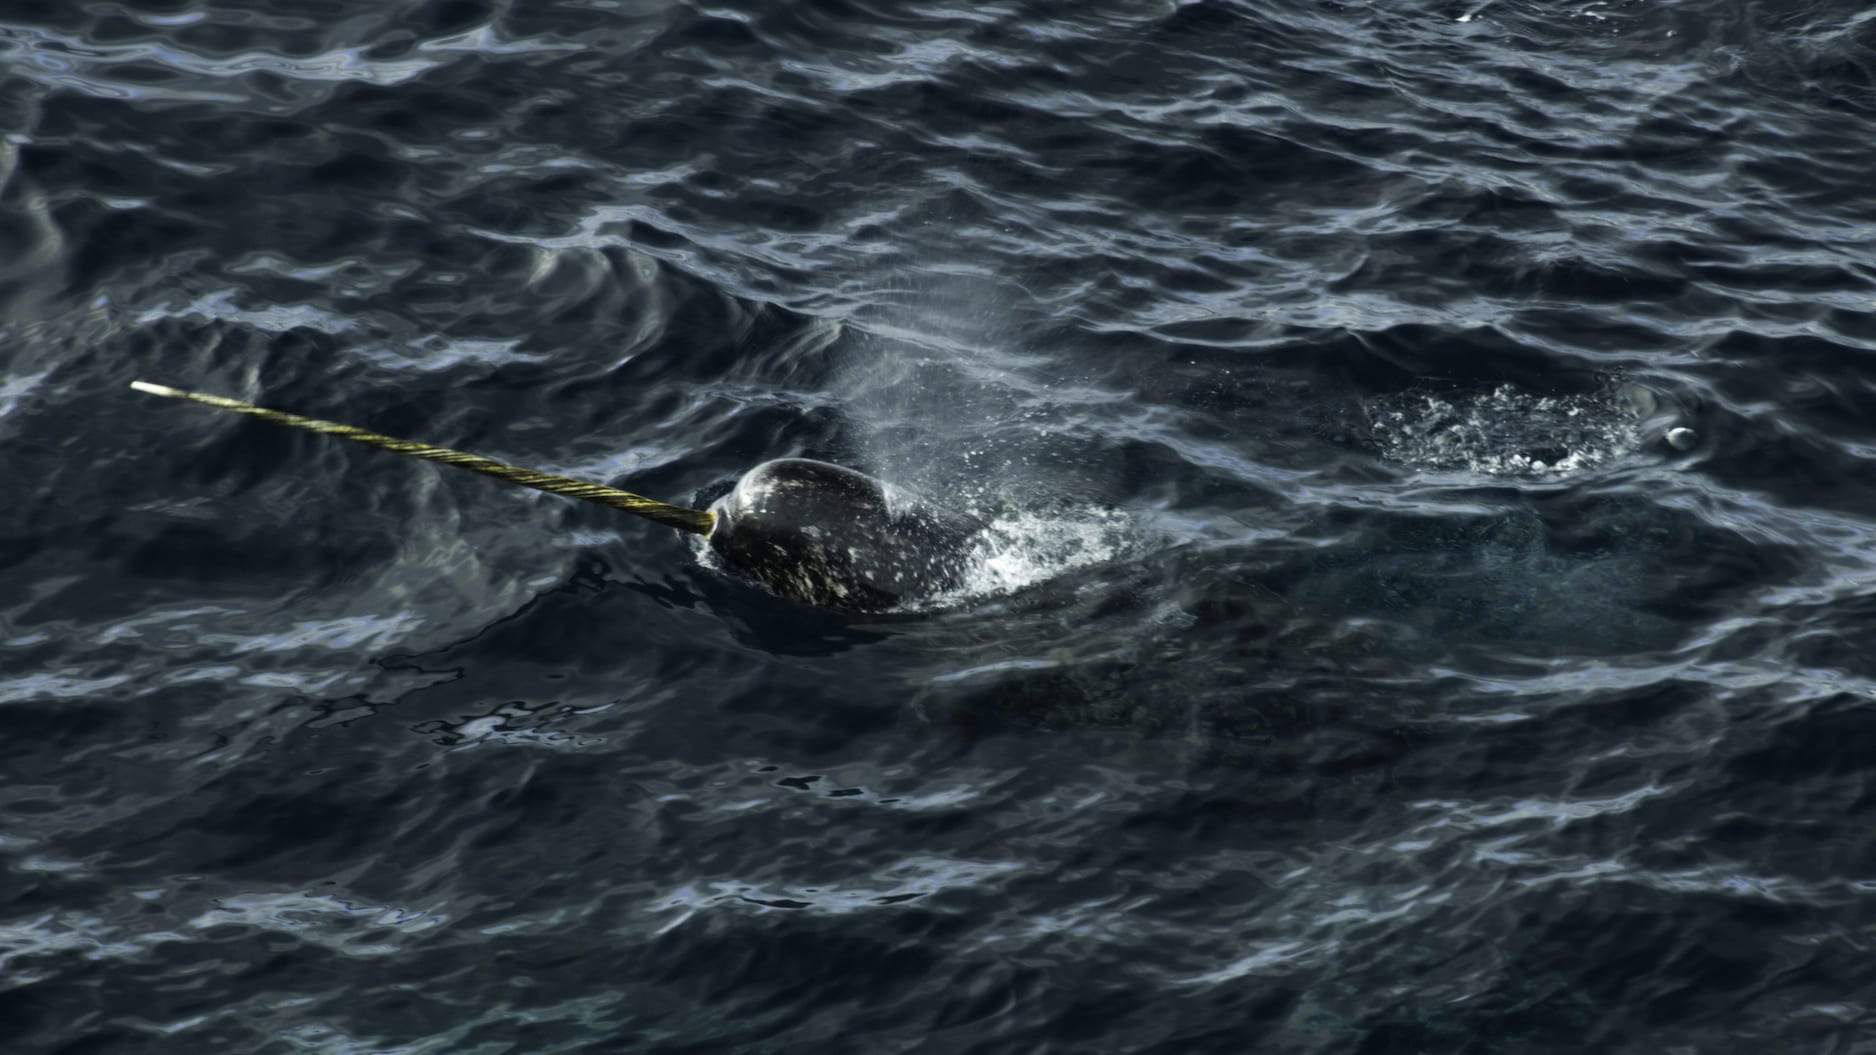 A narwhal's tusk is a long, hollow tooth that usually only develops in males. Its full function is still a mystery. (National Geographic for Disney+/Thomas Miller)